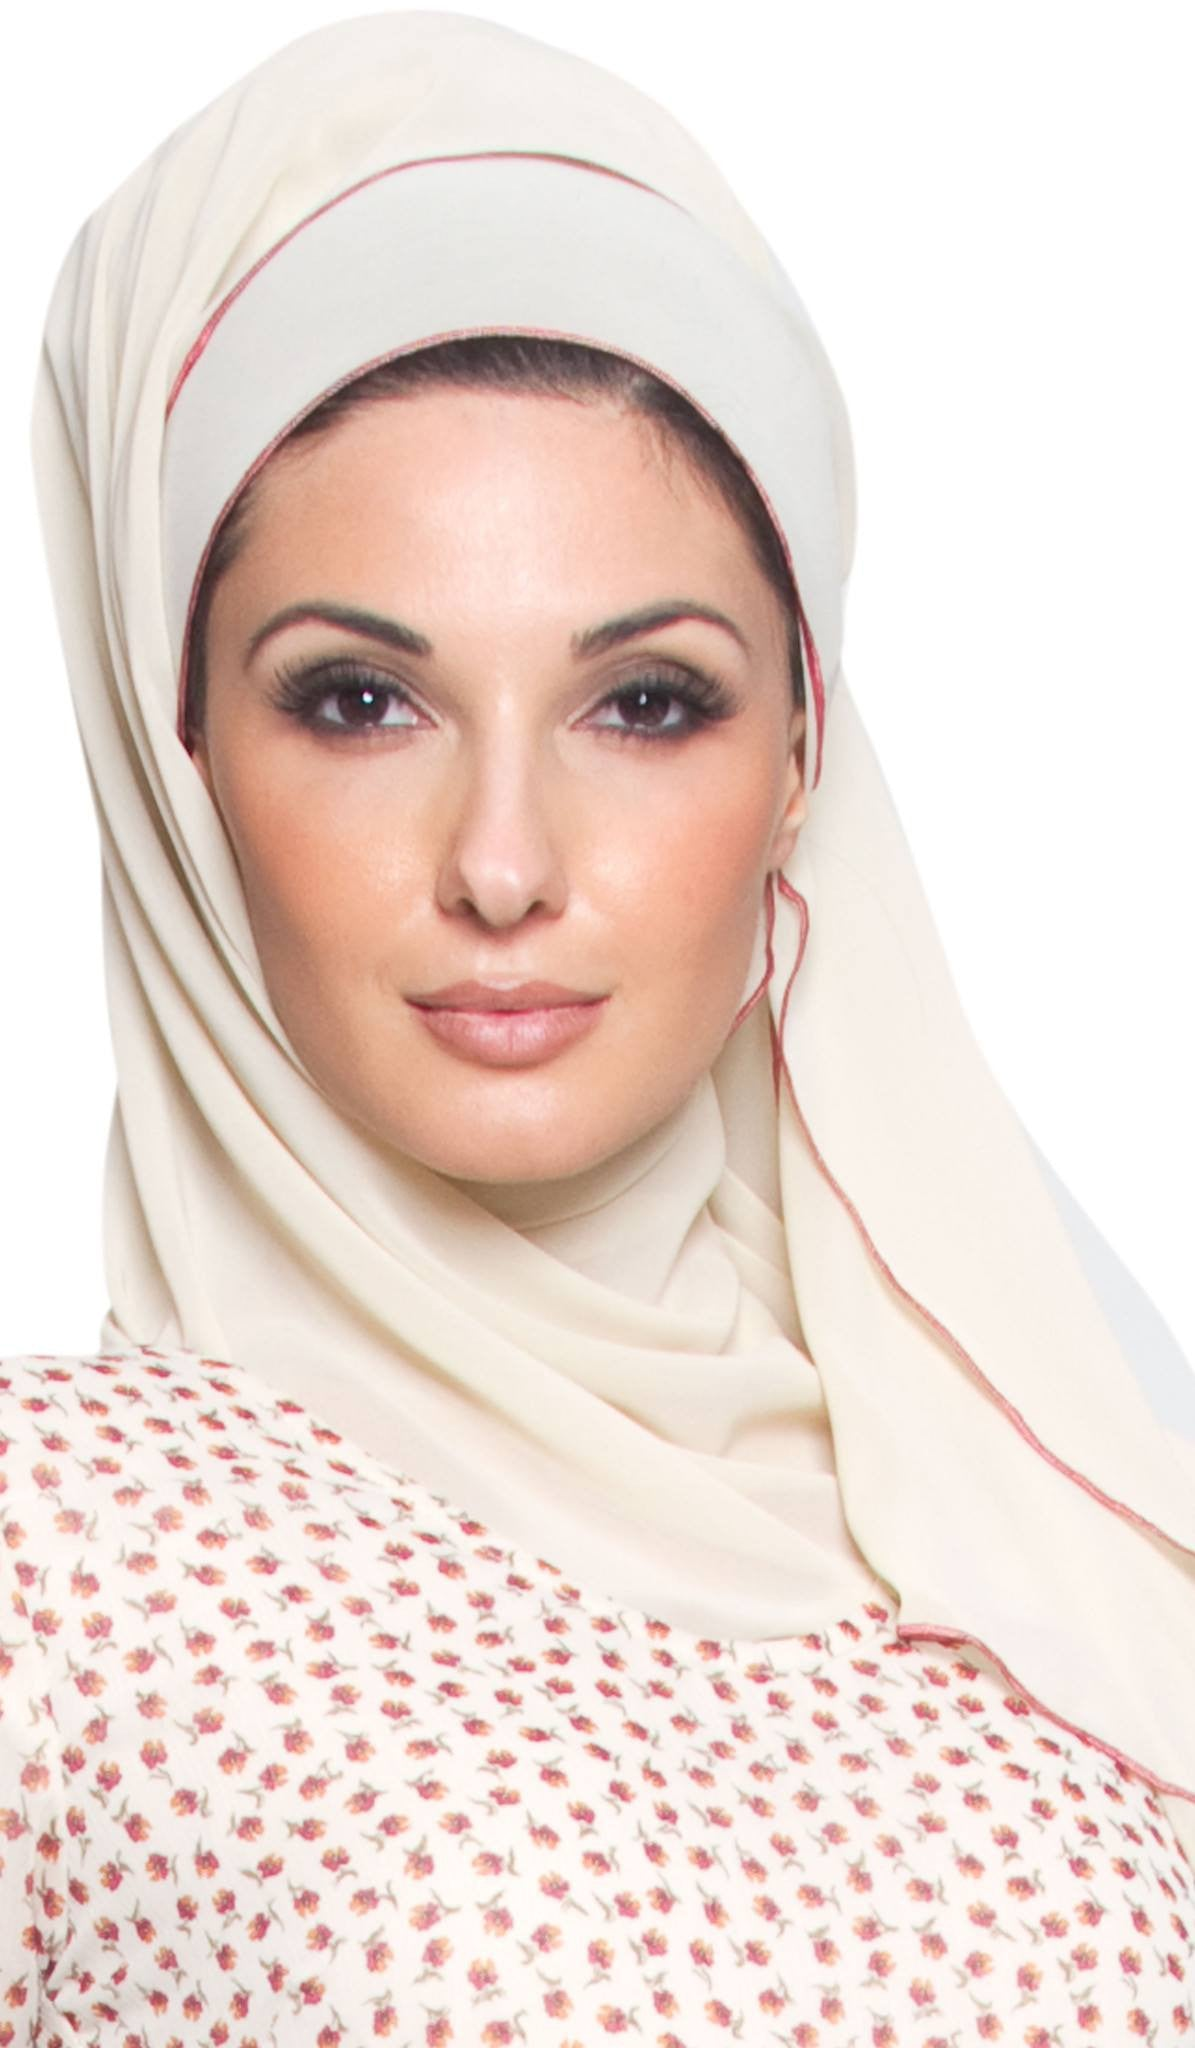 Soft Chiffon Rectangular Wrap Hijab Scarf with Contrast Edge - Creamy Beige